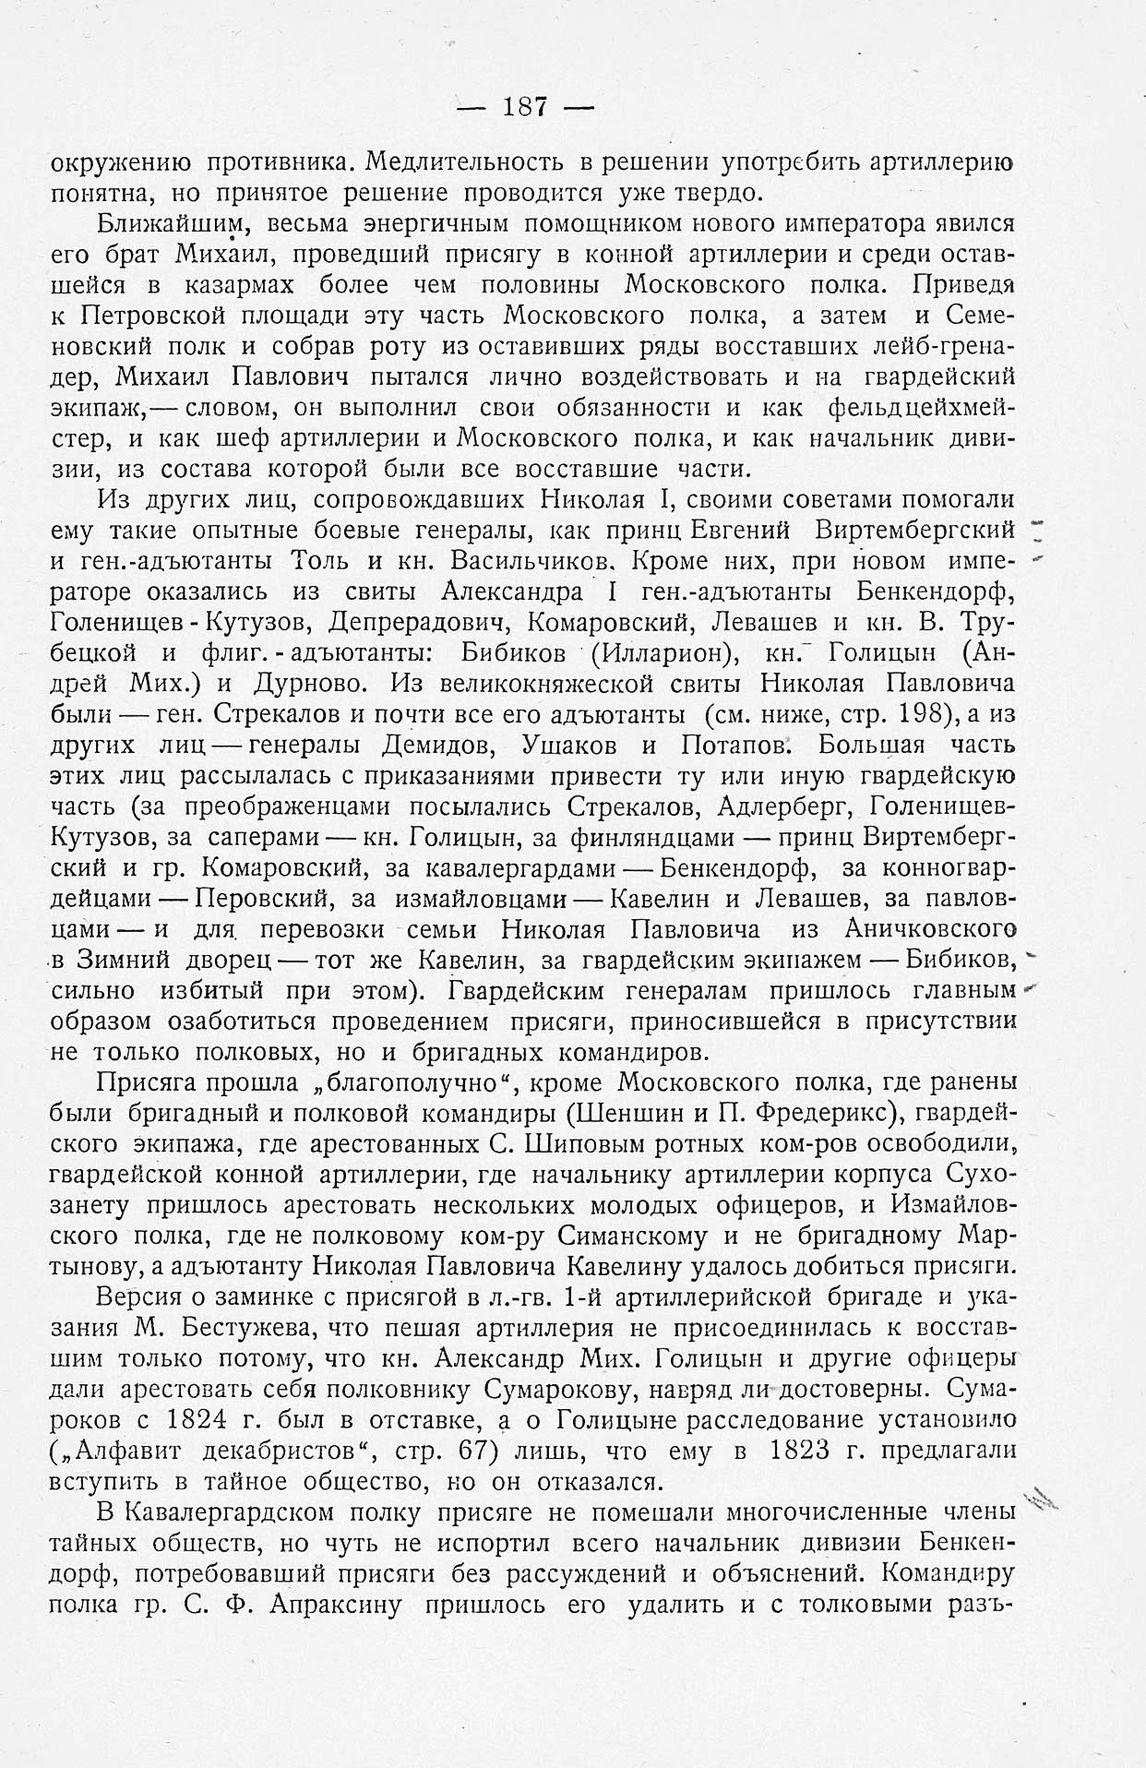 http://elib.shpl.ru/pages/566084/zooms/7